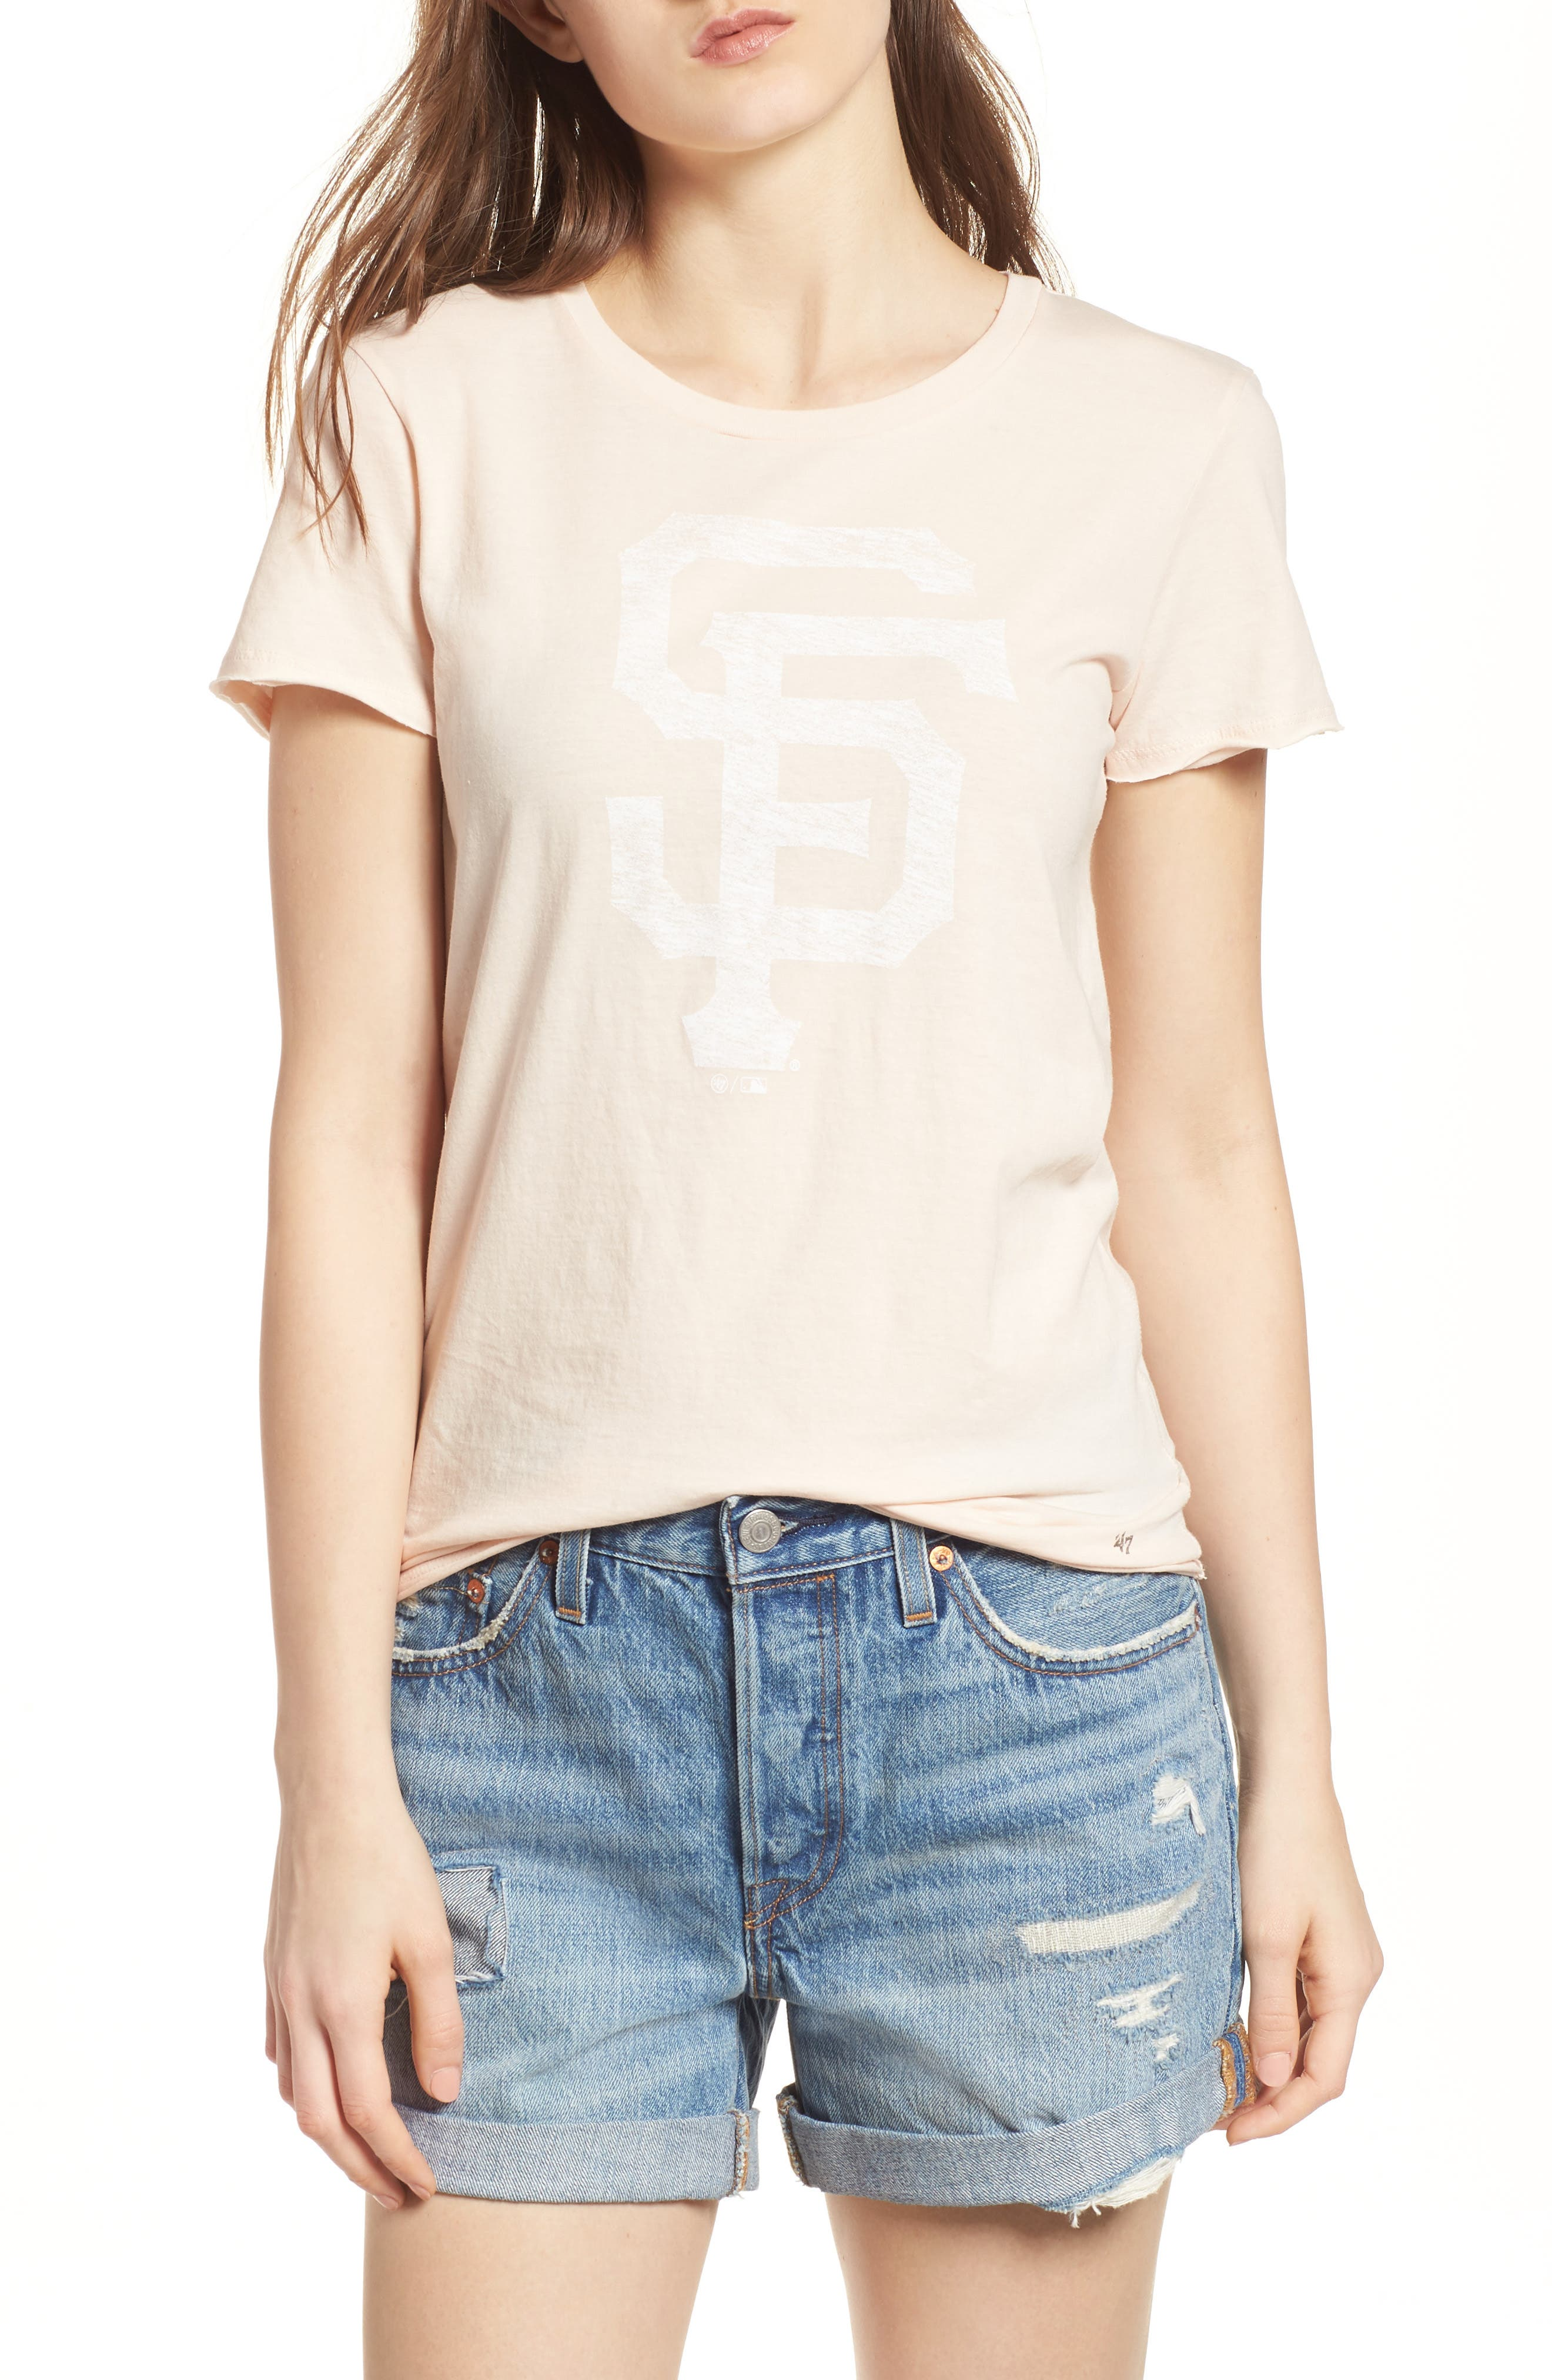 San Francisco Giants Fader Letter Tee,                         Main,                         color,